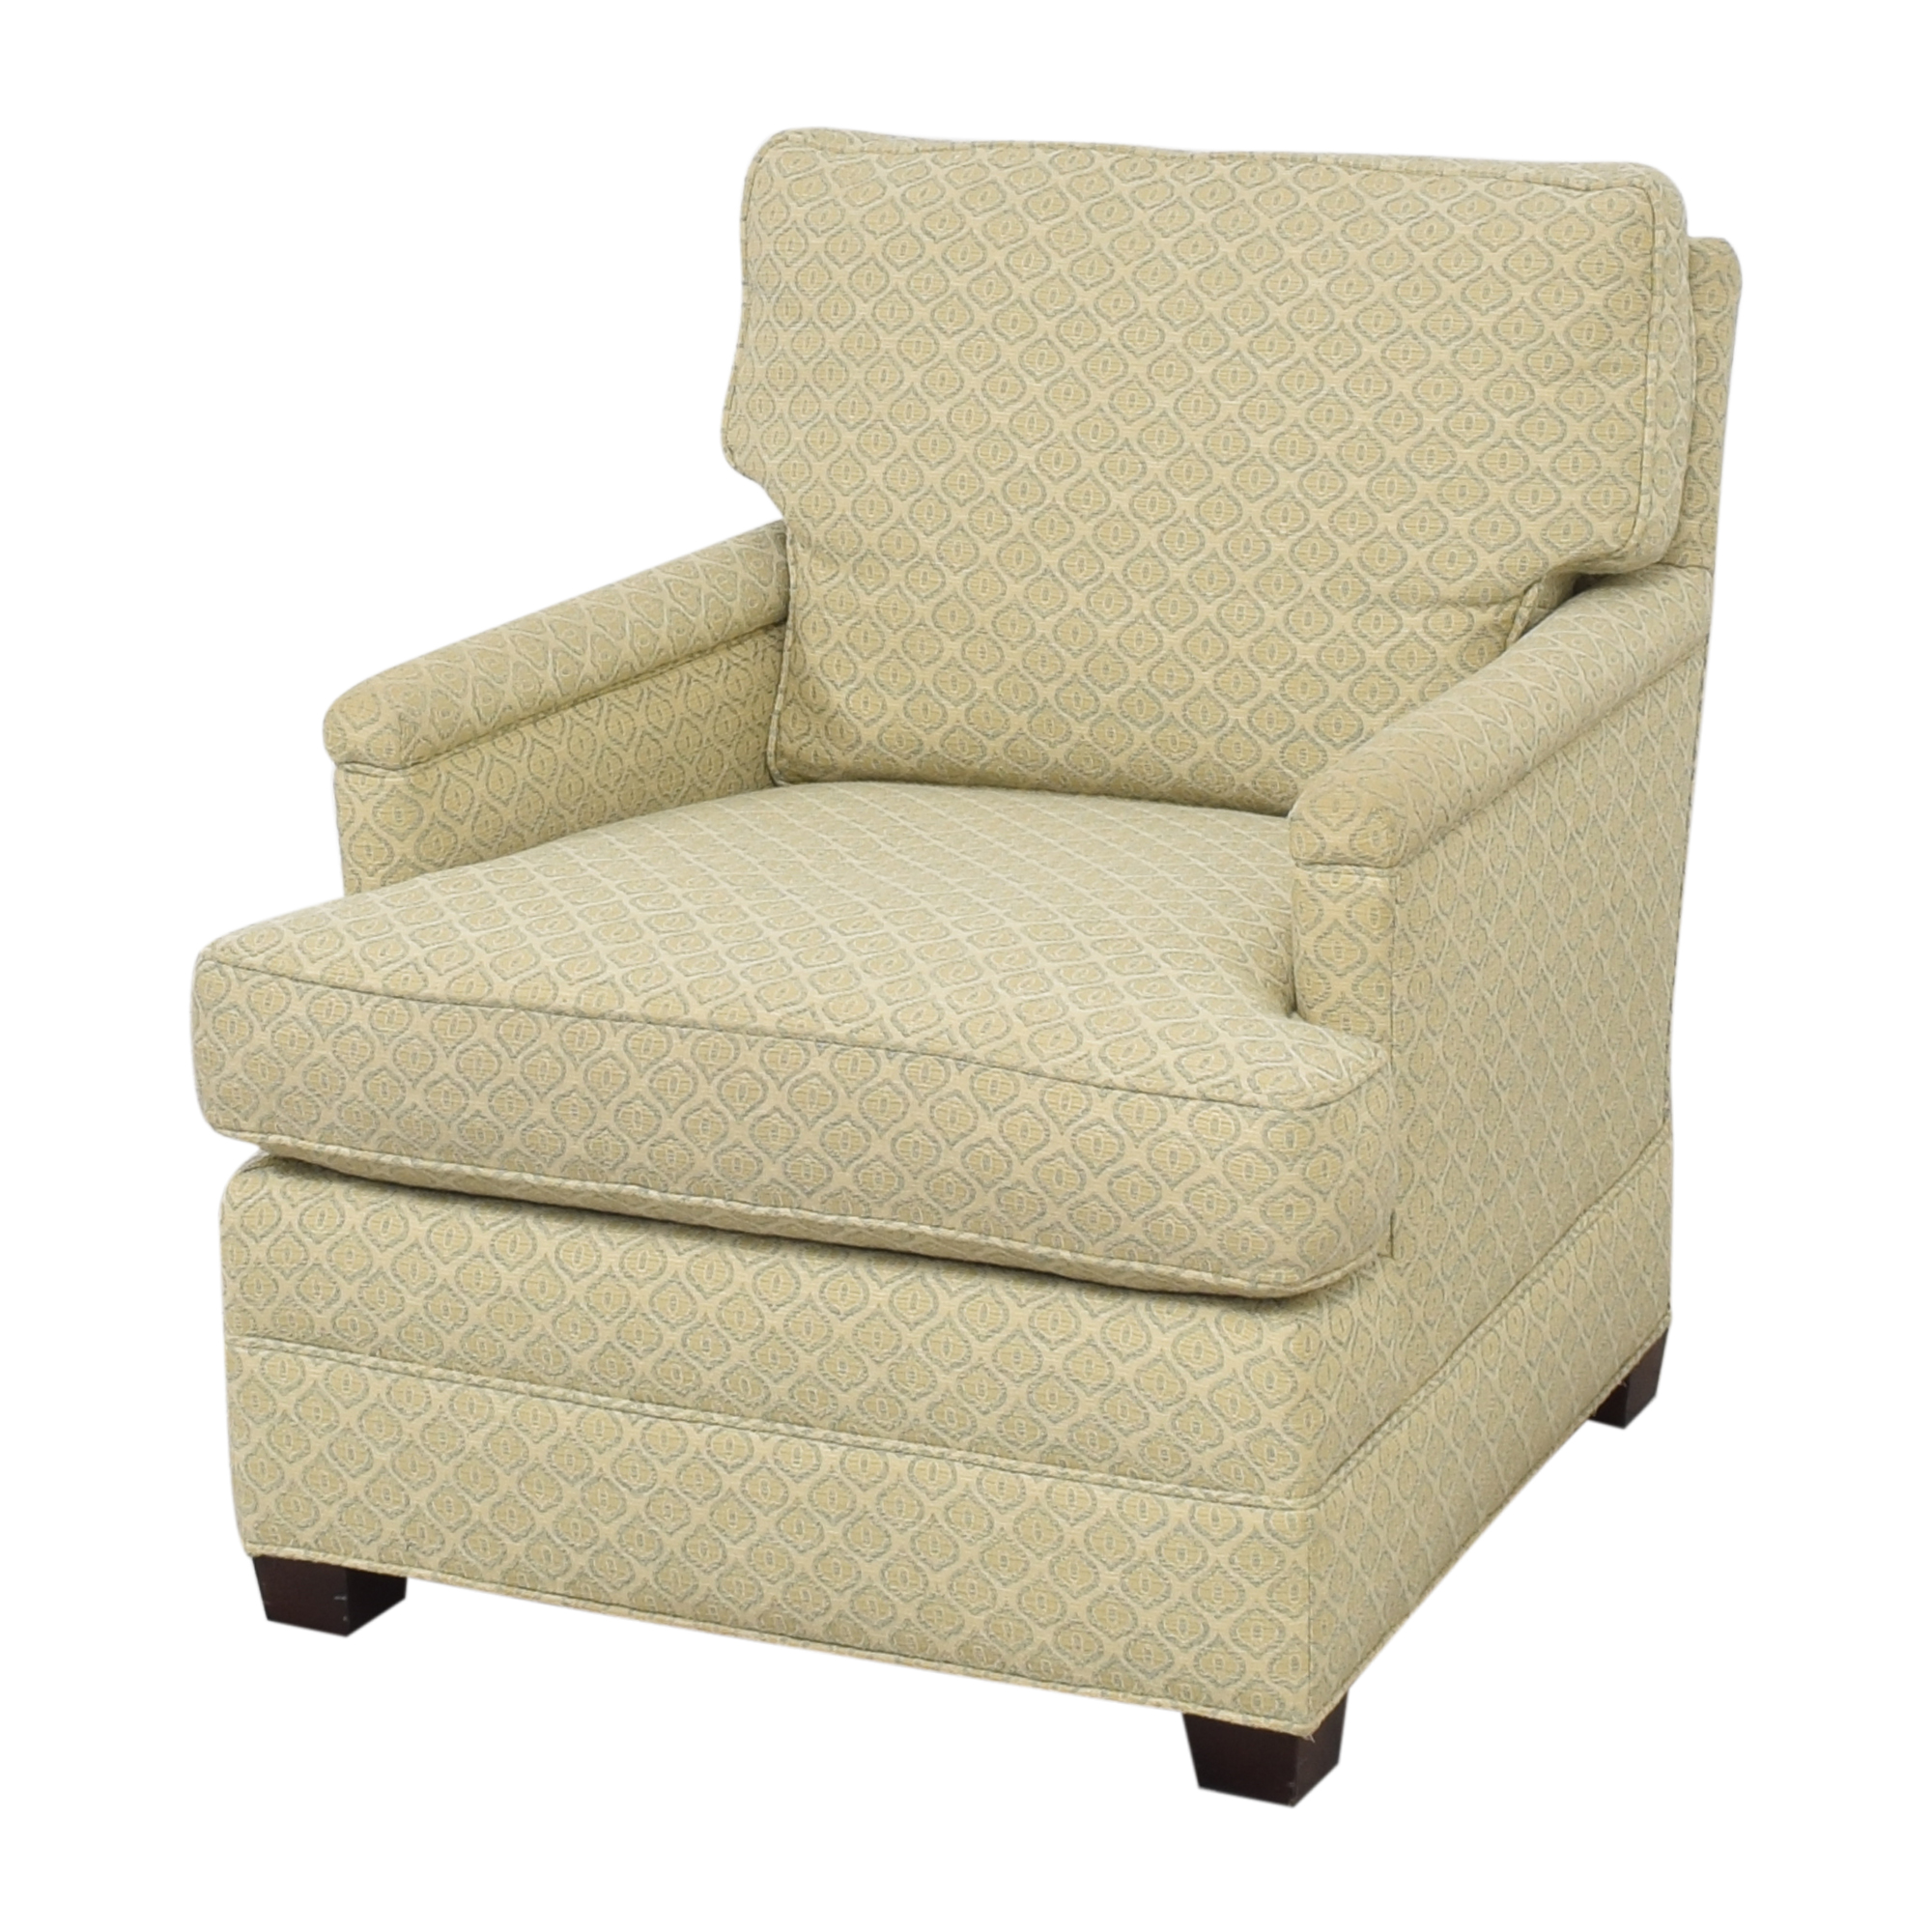 Lee Industries Lee Industries Club Chair second hand